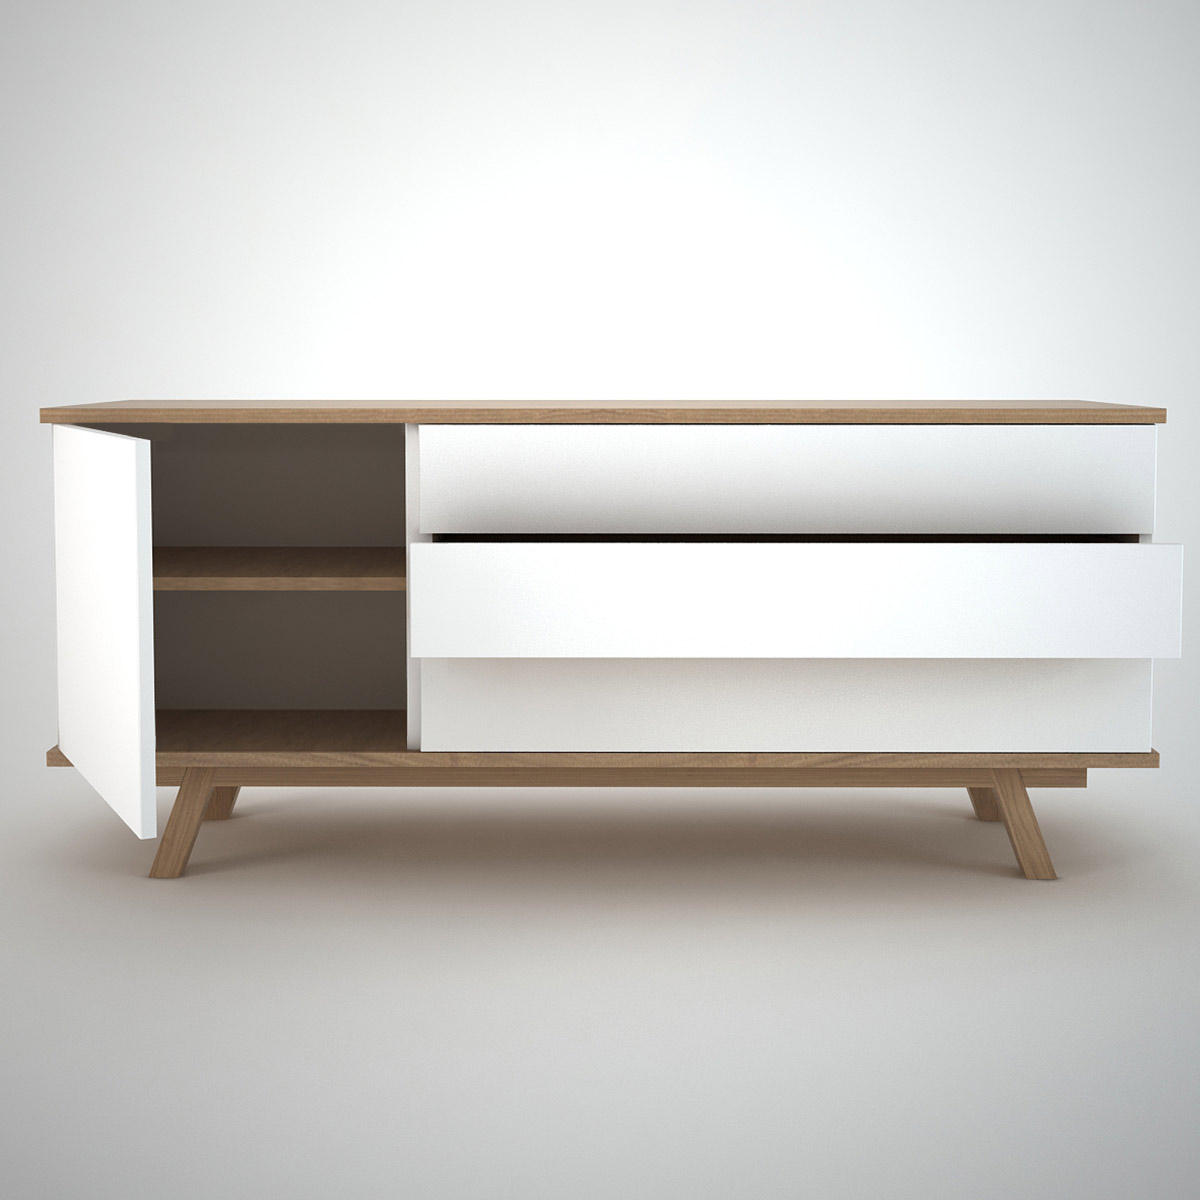 ottawa sideboard 1 3 white join furniture. Black Bedroom Furniture Sets. Home Design Ideas